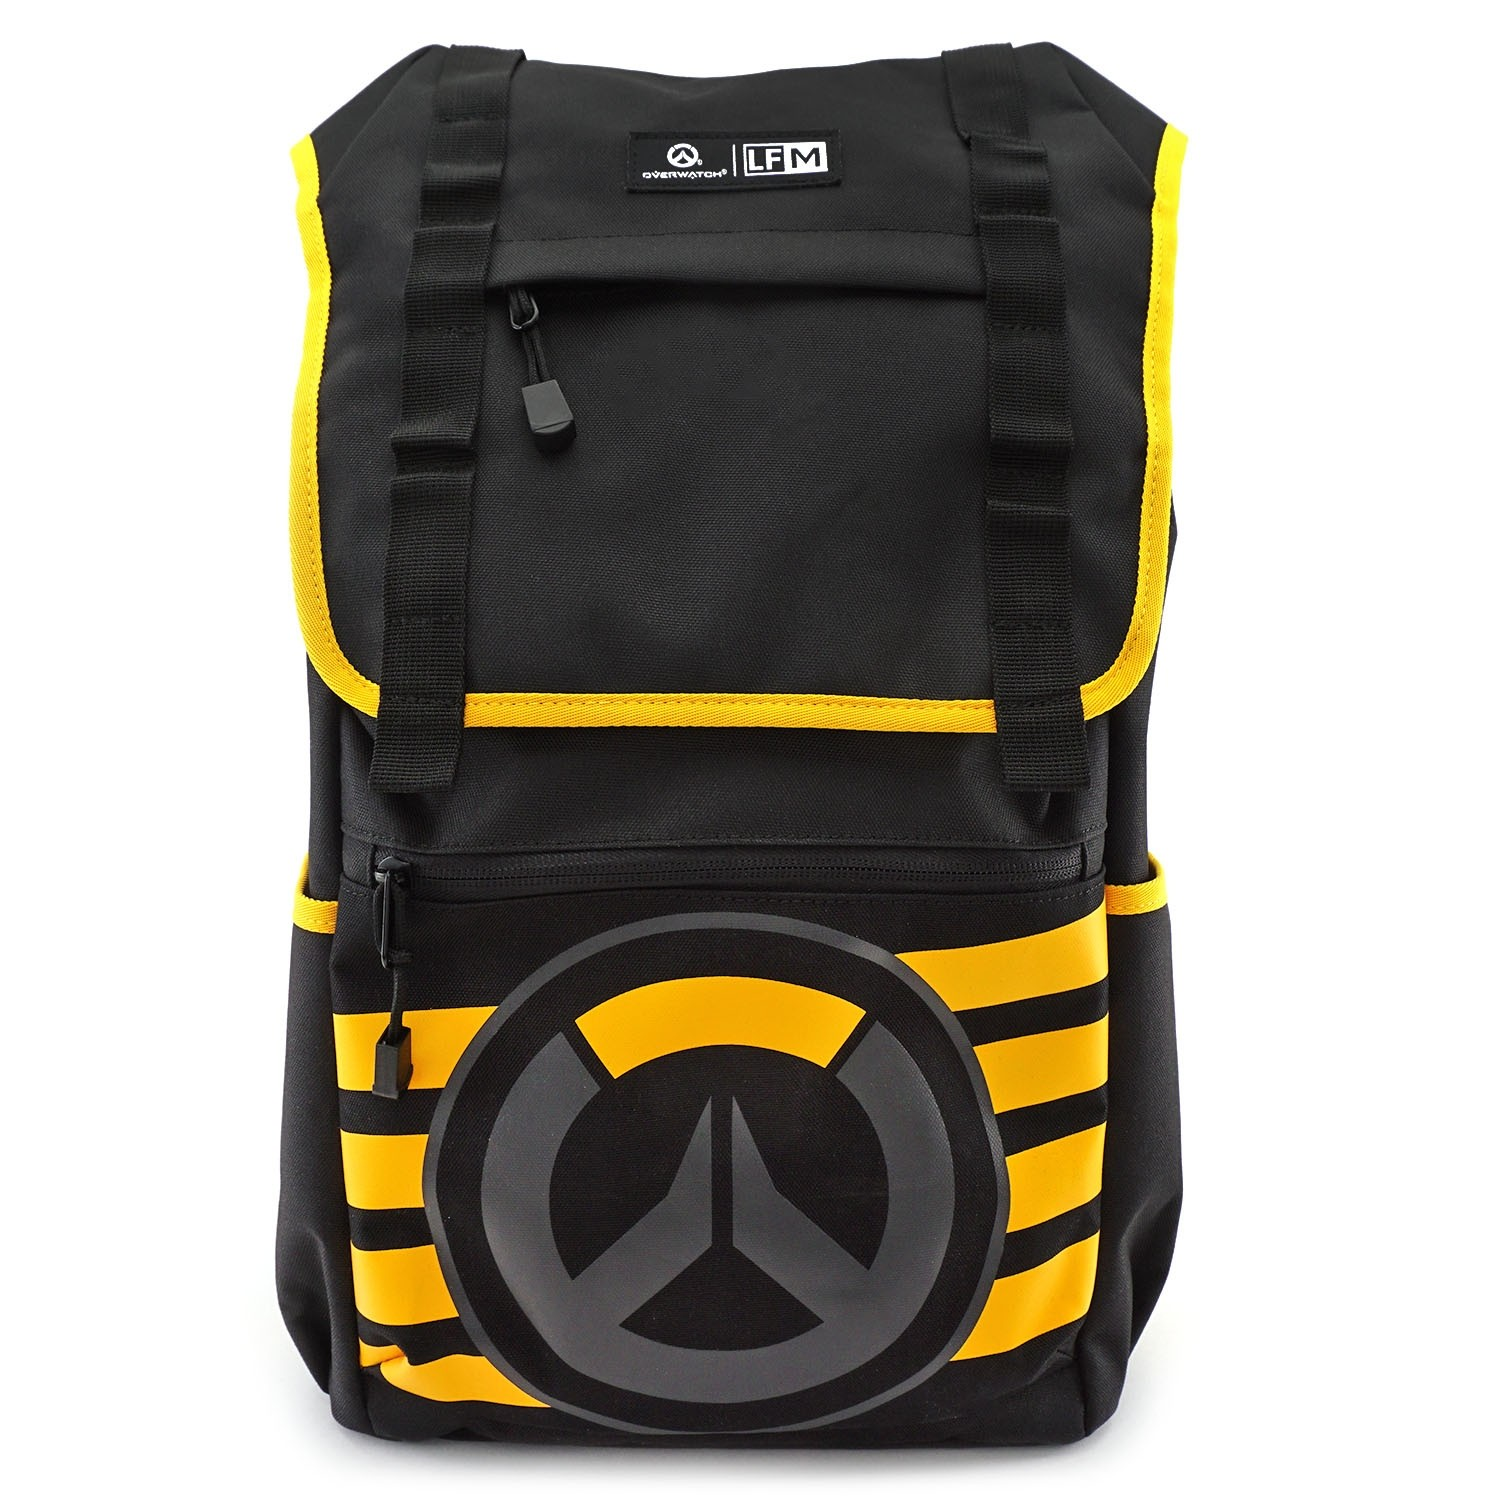 Loungefly x Overwatch Logo Backpack.